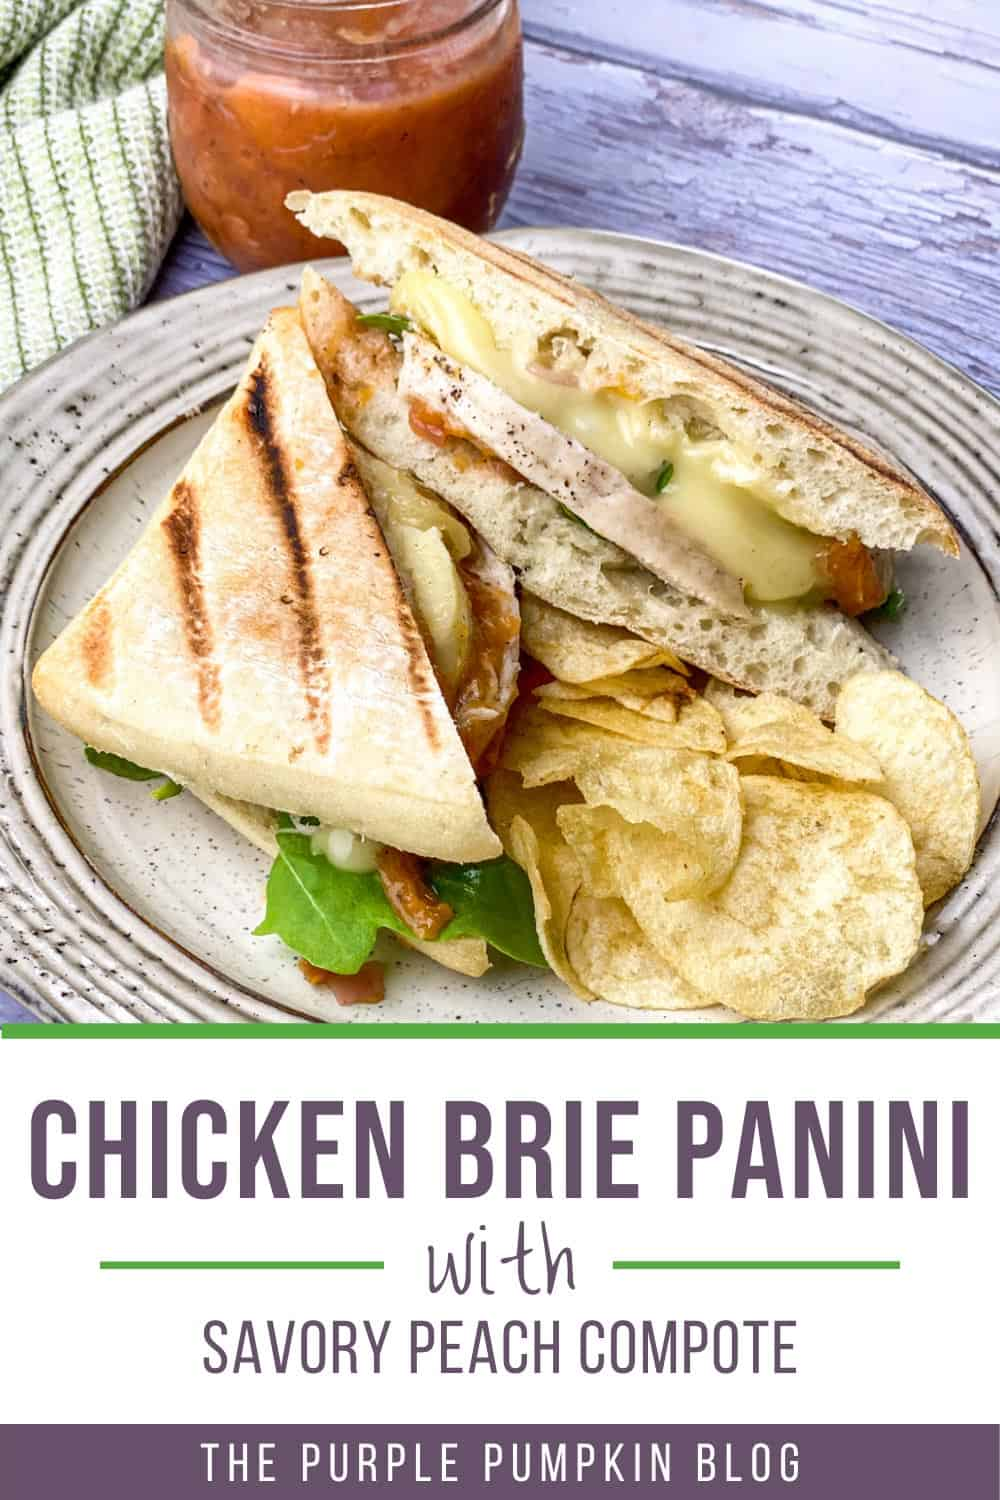 Chicken-Brie-Panini-with-Savory-Peach-Compote